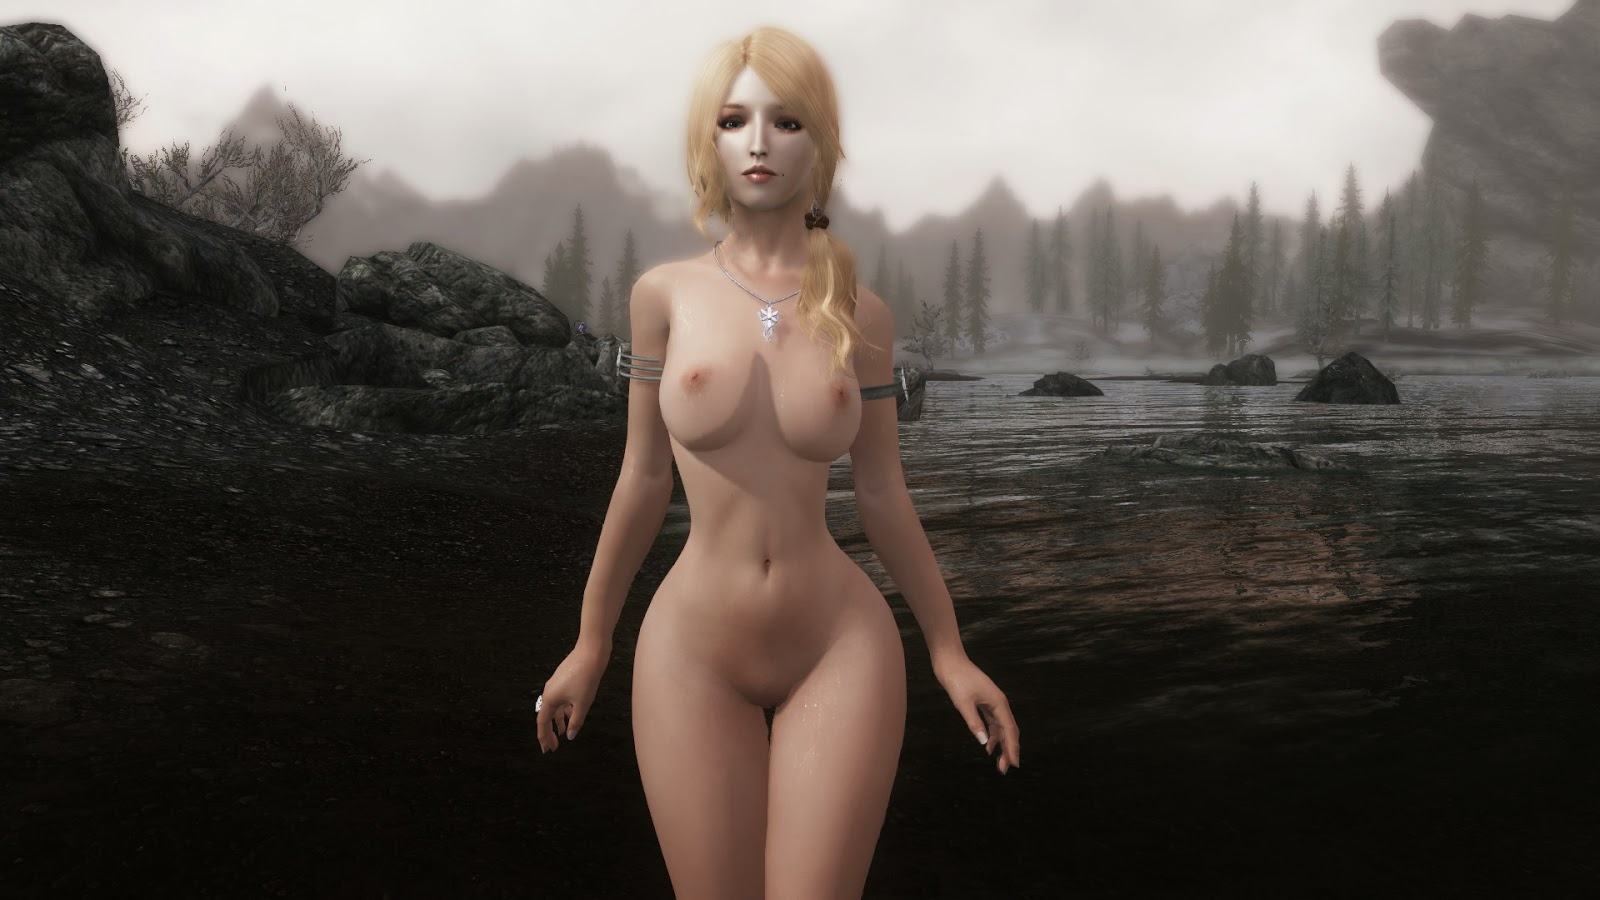 Erotic skyrim mods porno video